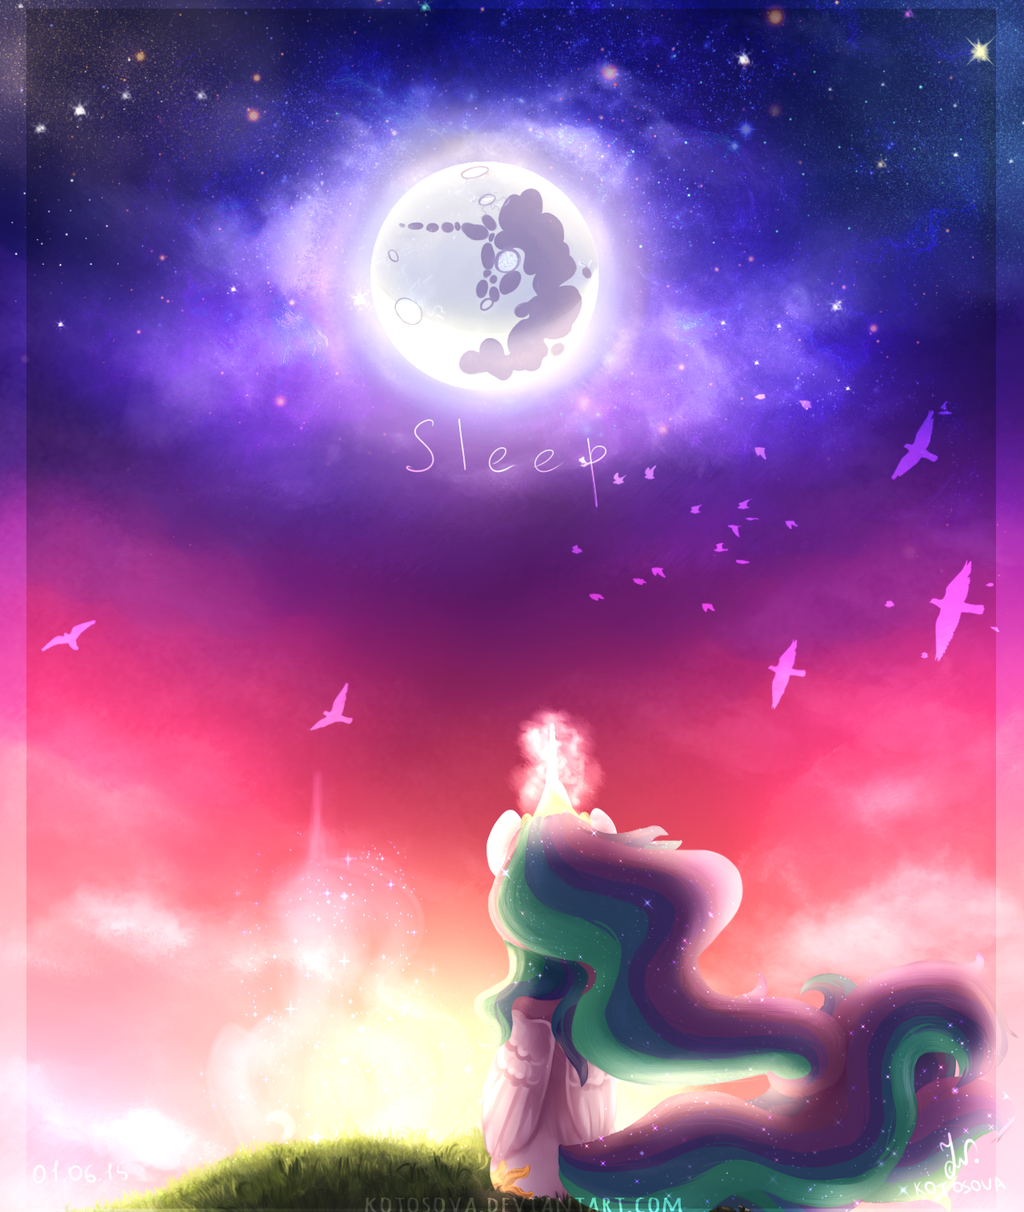 http://uupload.ir/files/7zjp_celestia_and_moon_by_kotosova-d8vmbmw.png